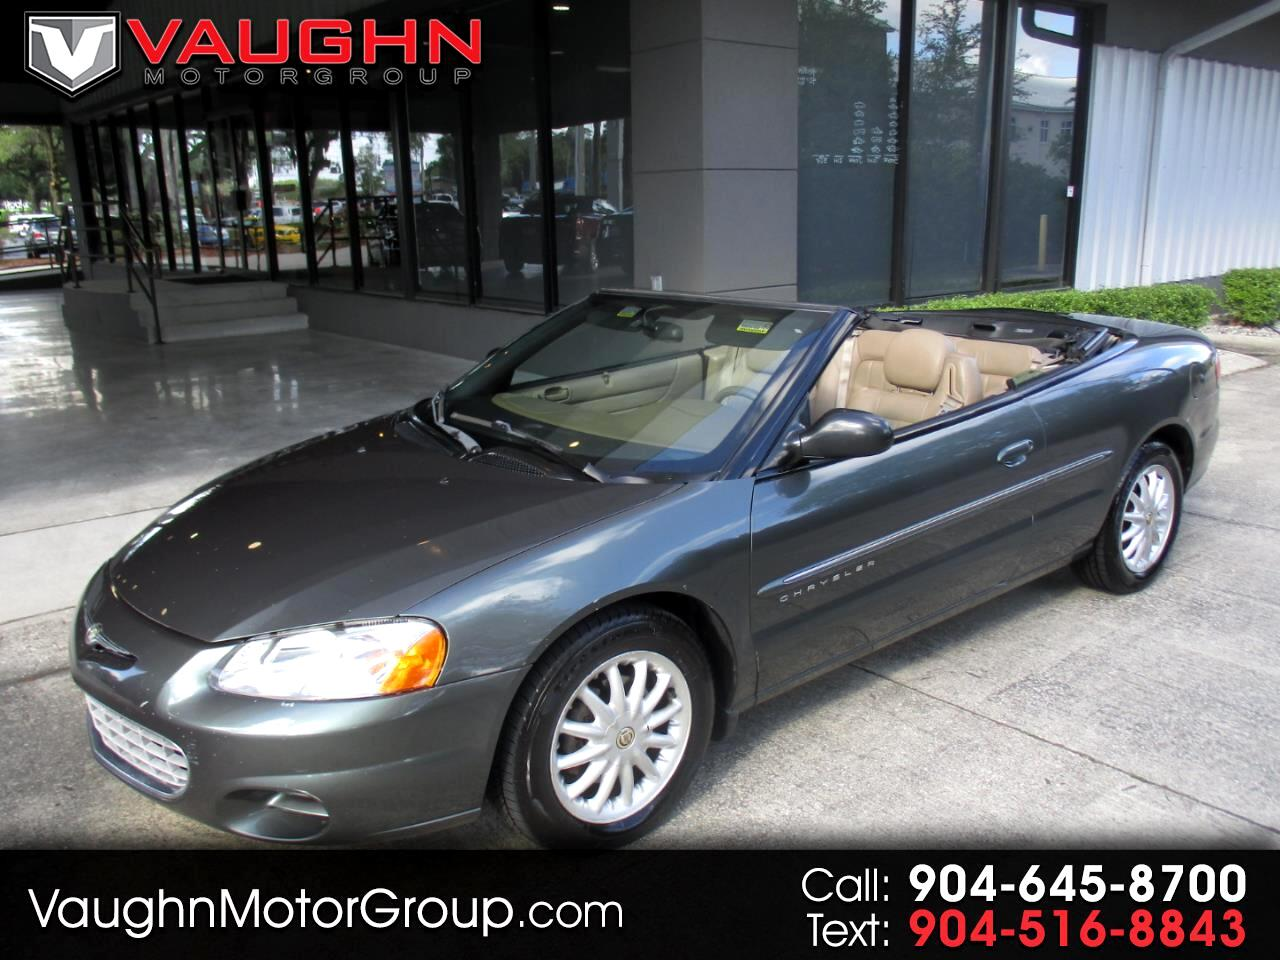 Chrysler Sebring 2dr Convertible LX 2001